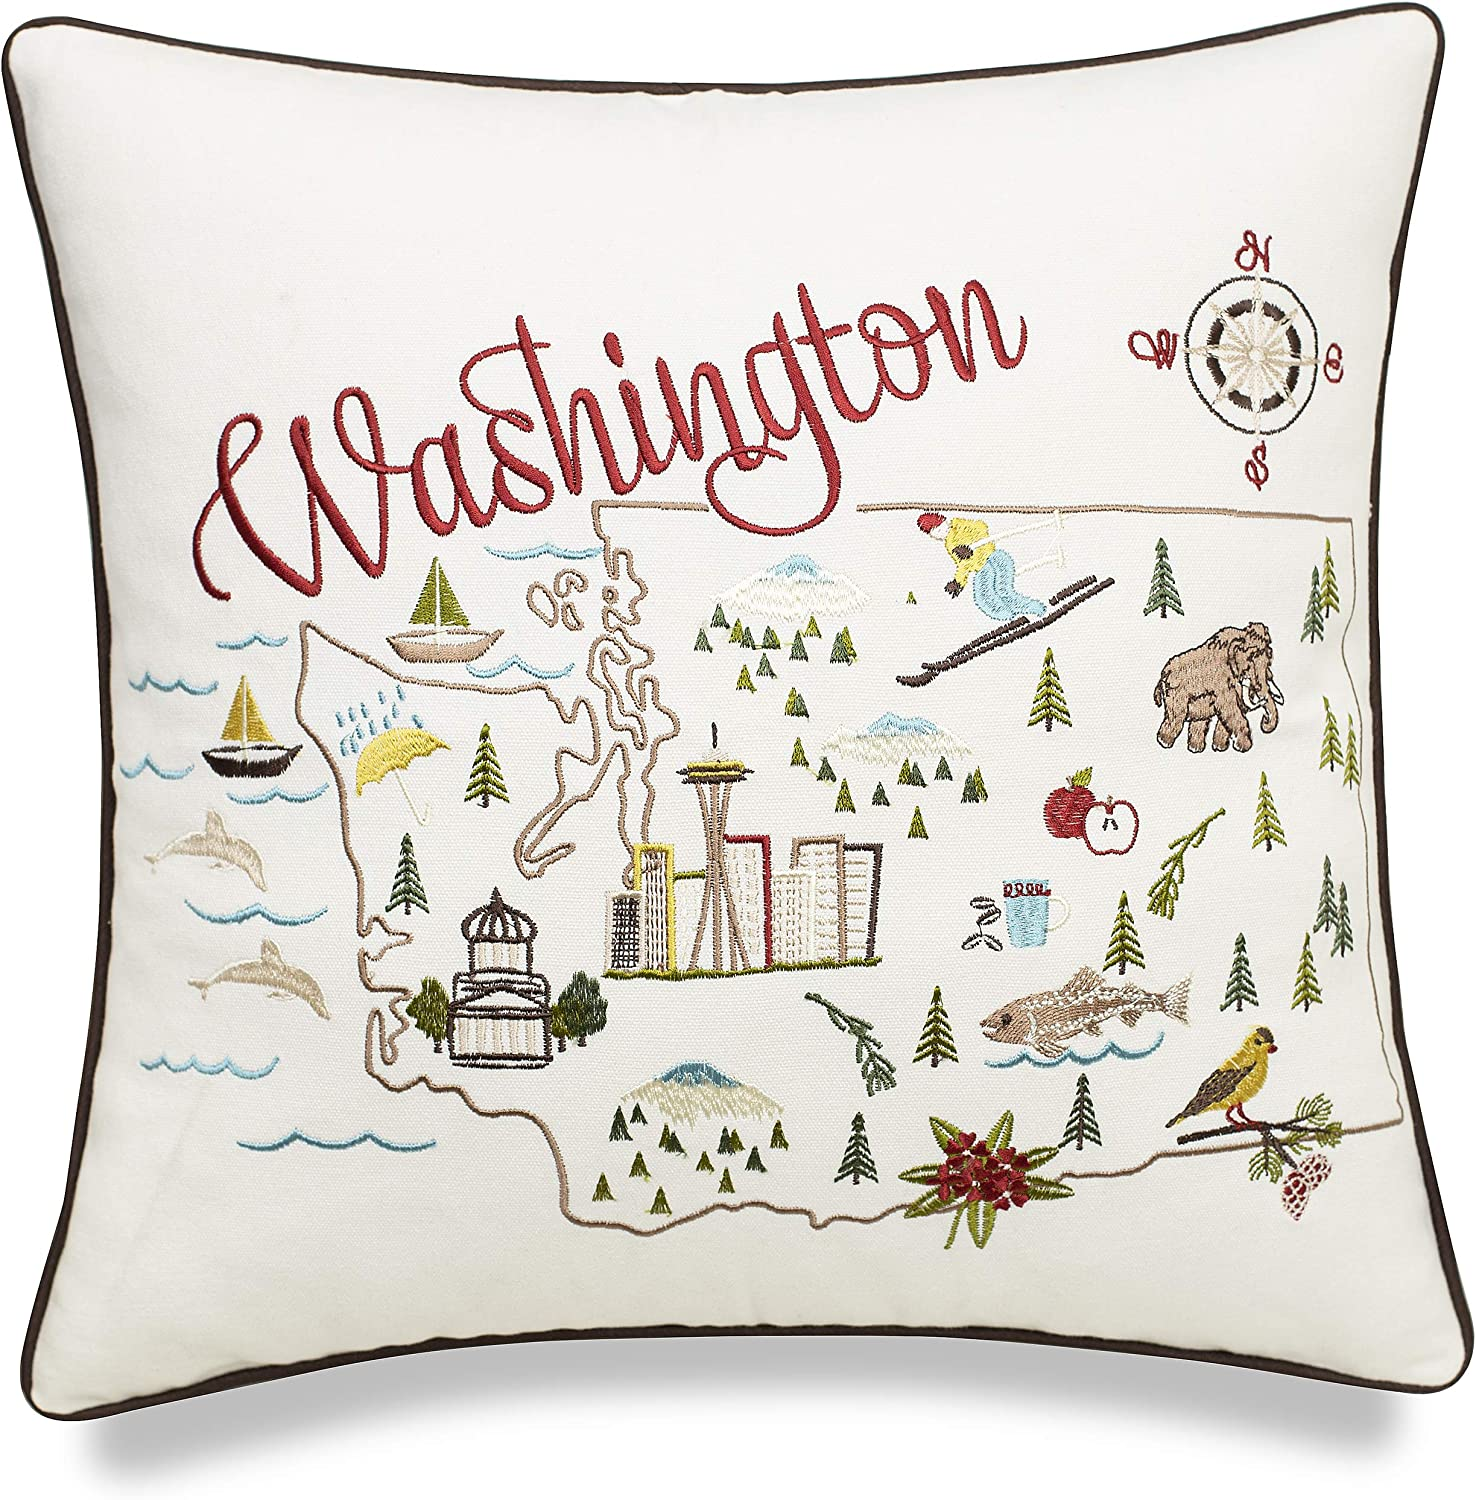 EURASIA DECOR Washington State Map 18x18 Embroidered Decorative Accent Pillow Cover - Birthday Decor, Graduation, New Home Gift